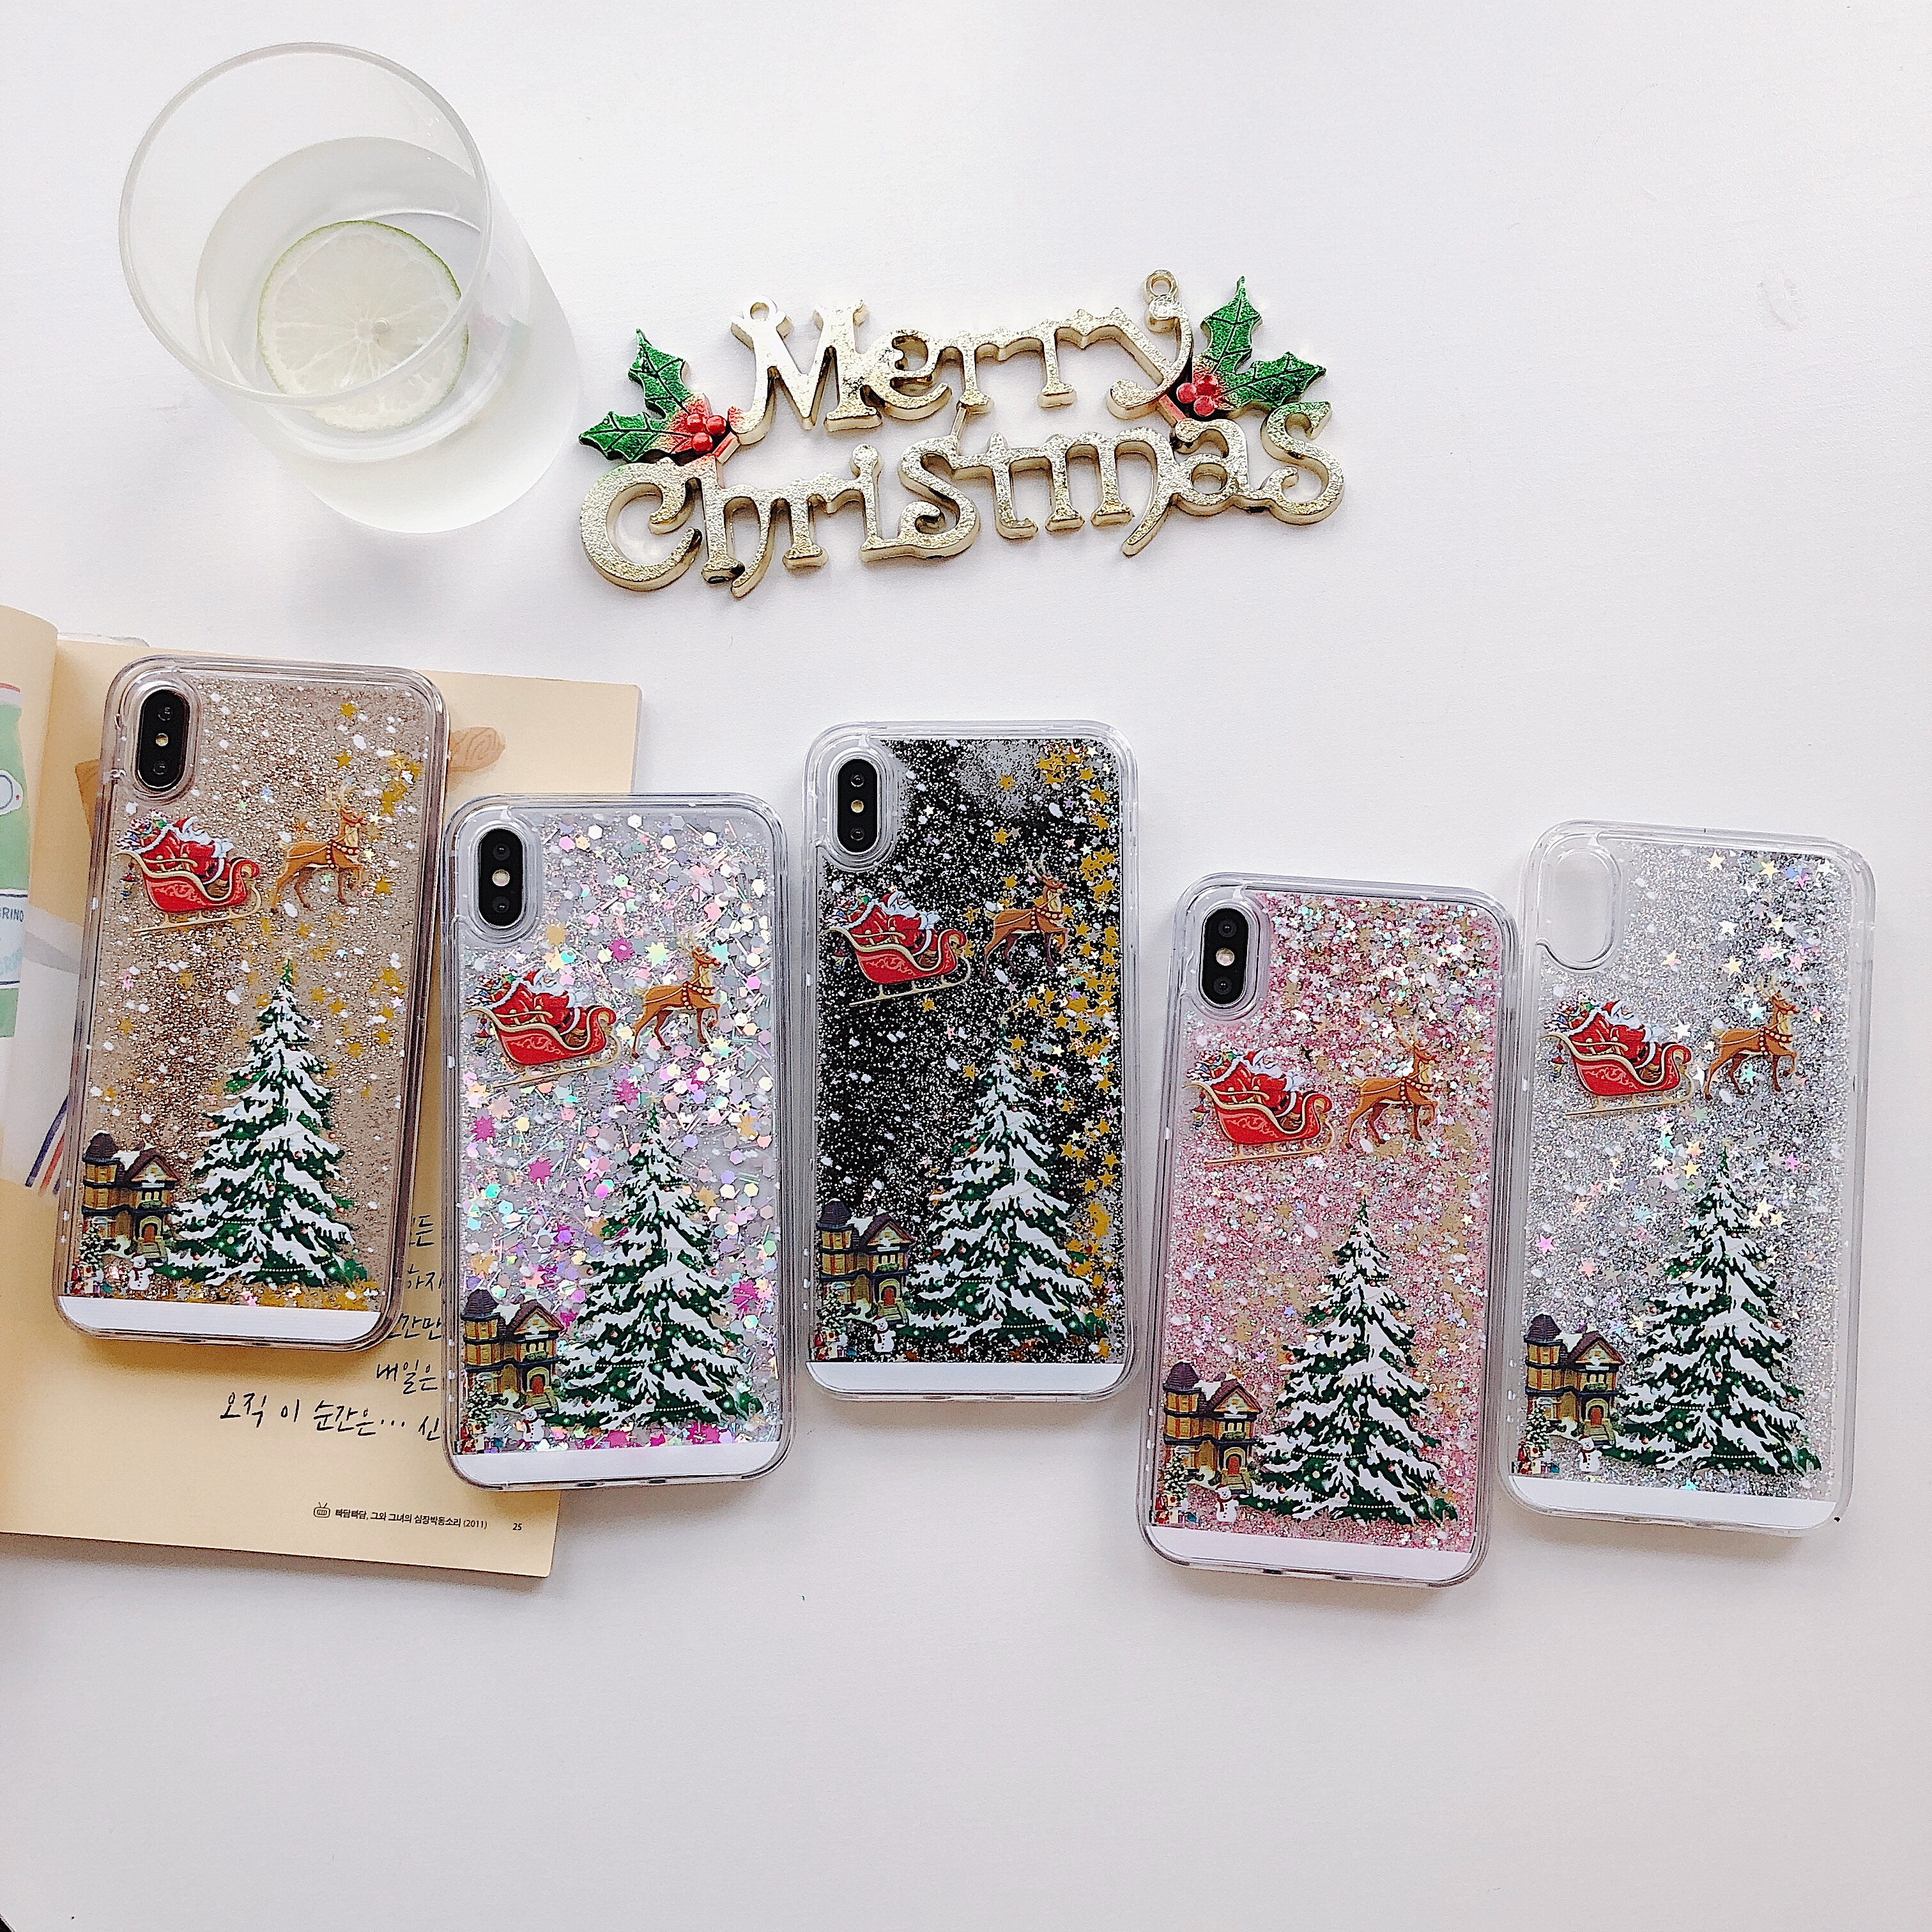 Glitter Christmas tree <font><b>Case</b></font> for <font><b>Samsung</b></font> Galaxy <font><b>S7</b></font> Edge S8 S9 Plus S10 Lite S10E Note 8 9 10 pro Silicone Diamond quicksand <font><b>Case</b></font> image